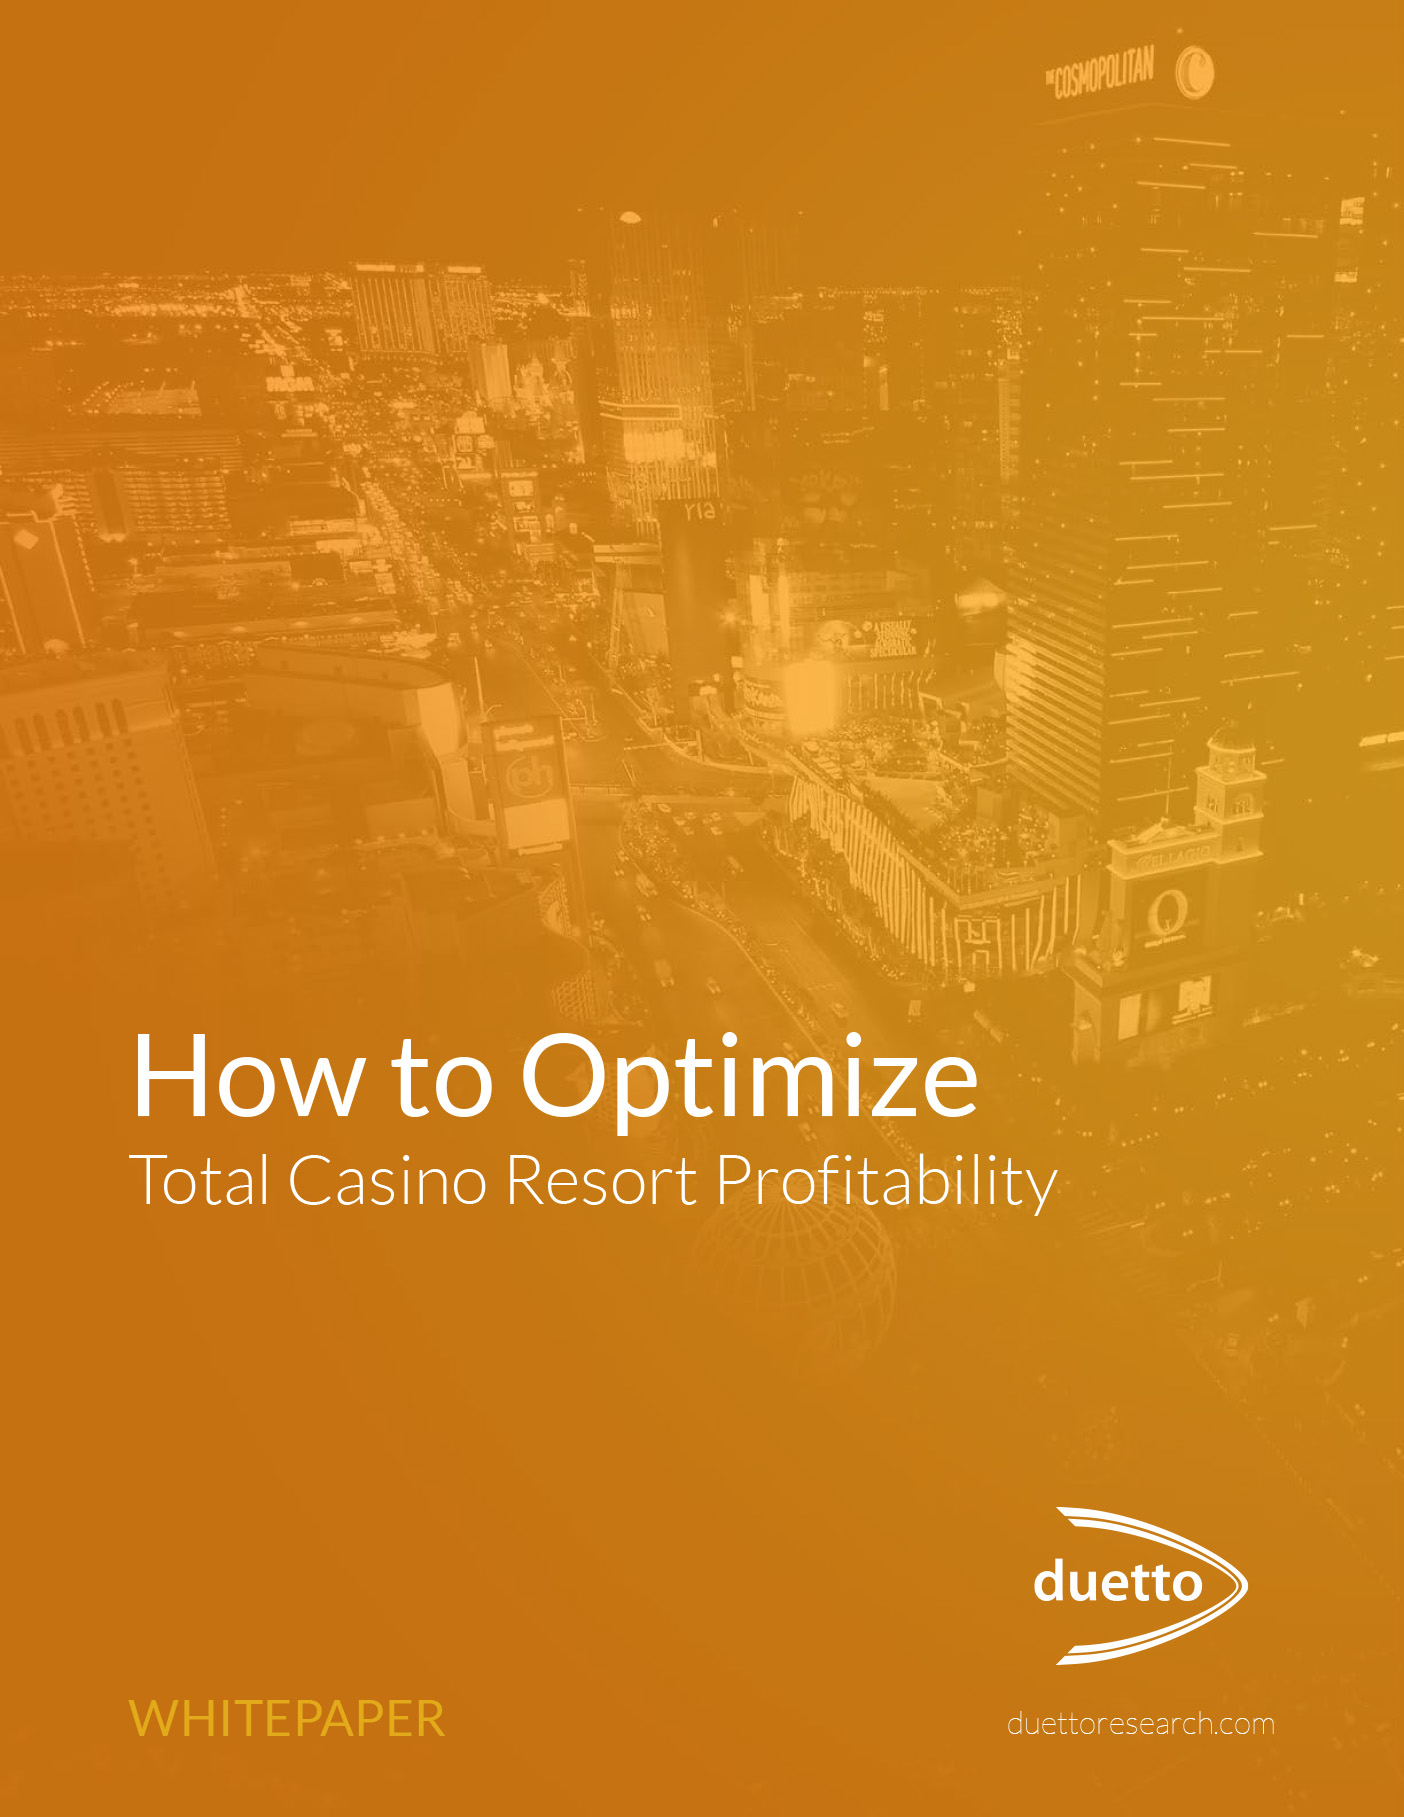 1How-to-Optimize-Casino-Profitability-1.jpg